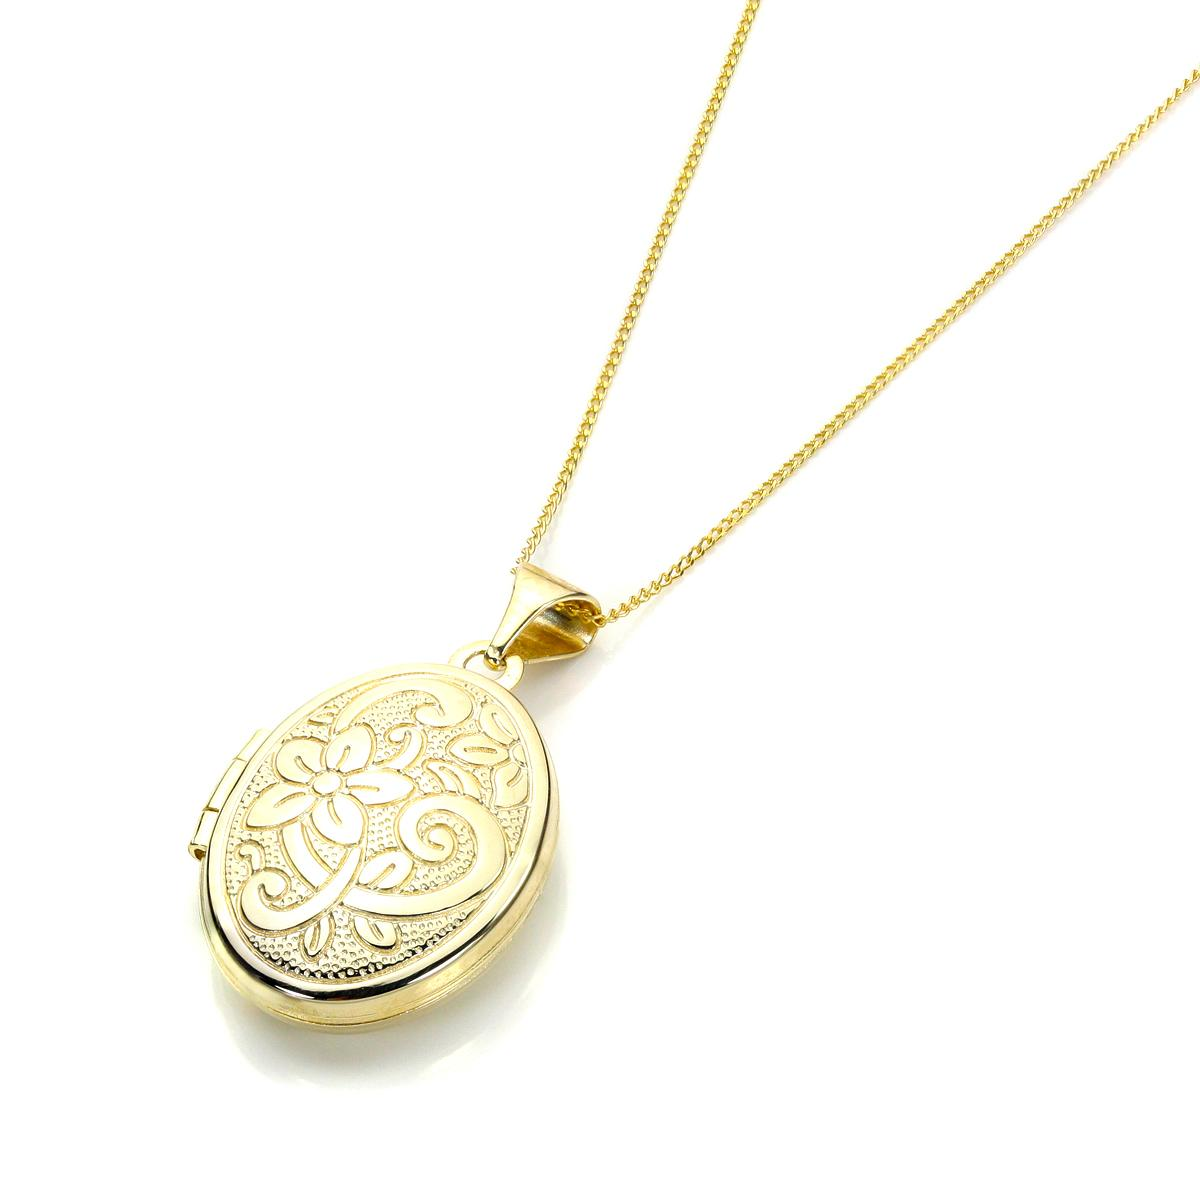 size necklace lockets chain os locket product sweet memory necklaces